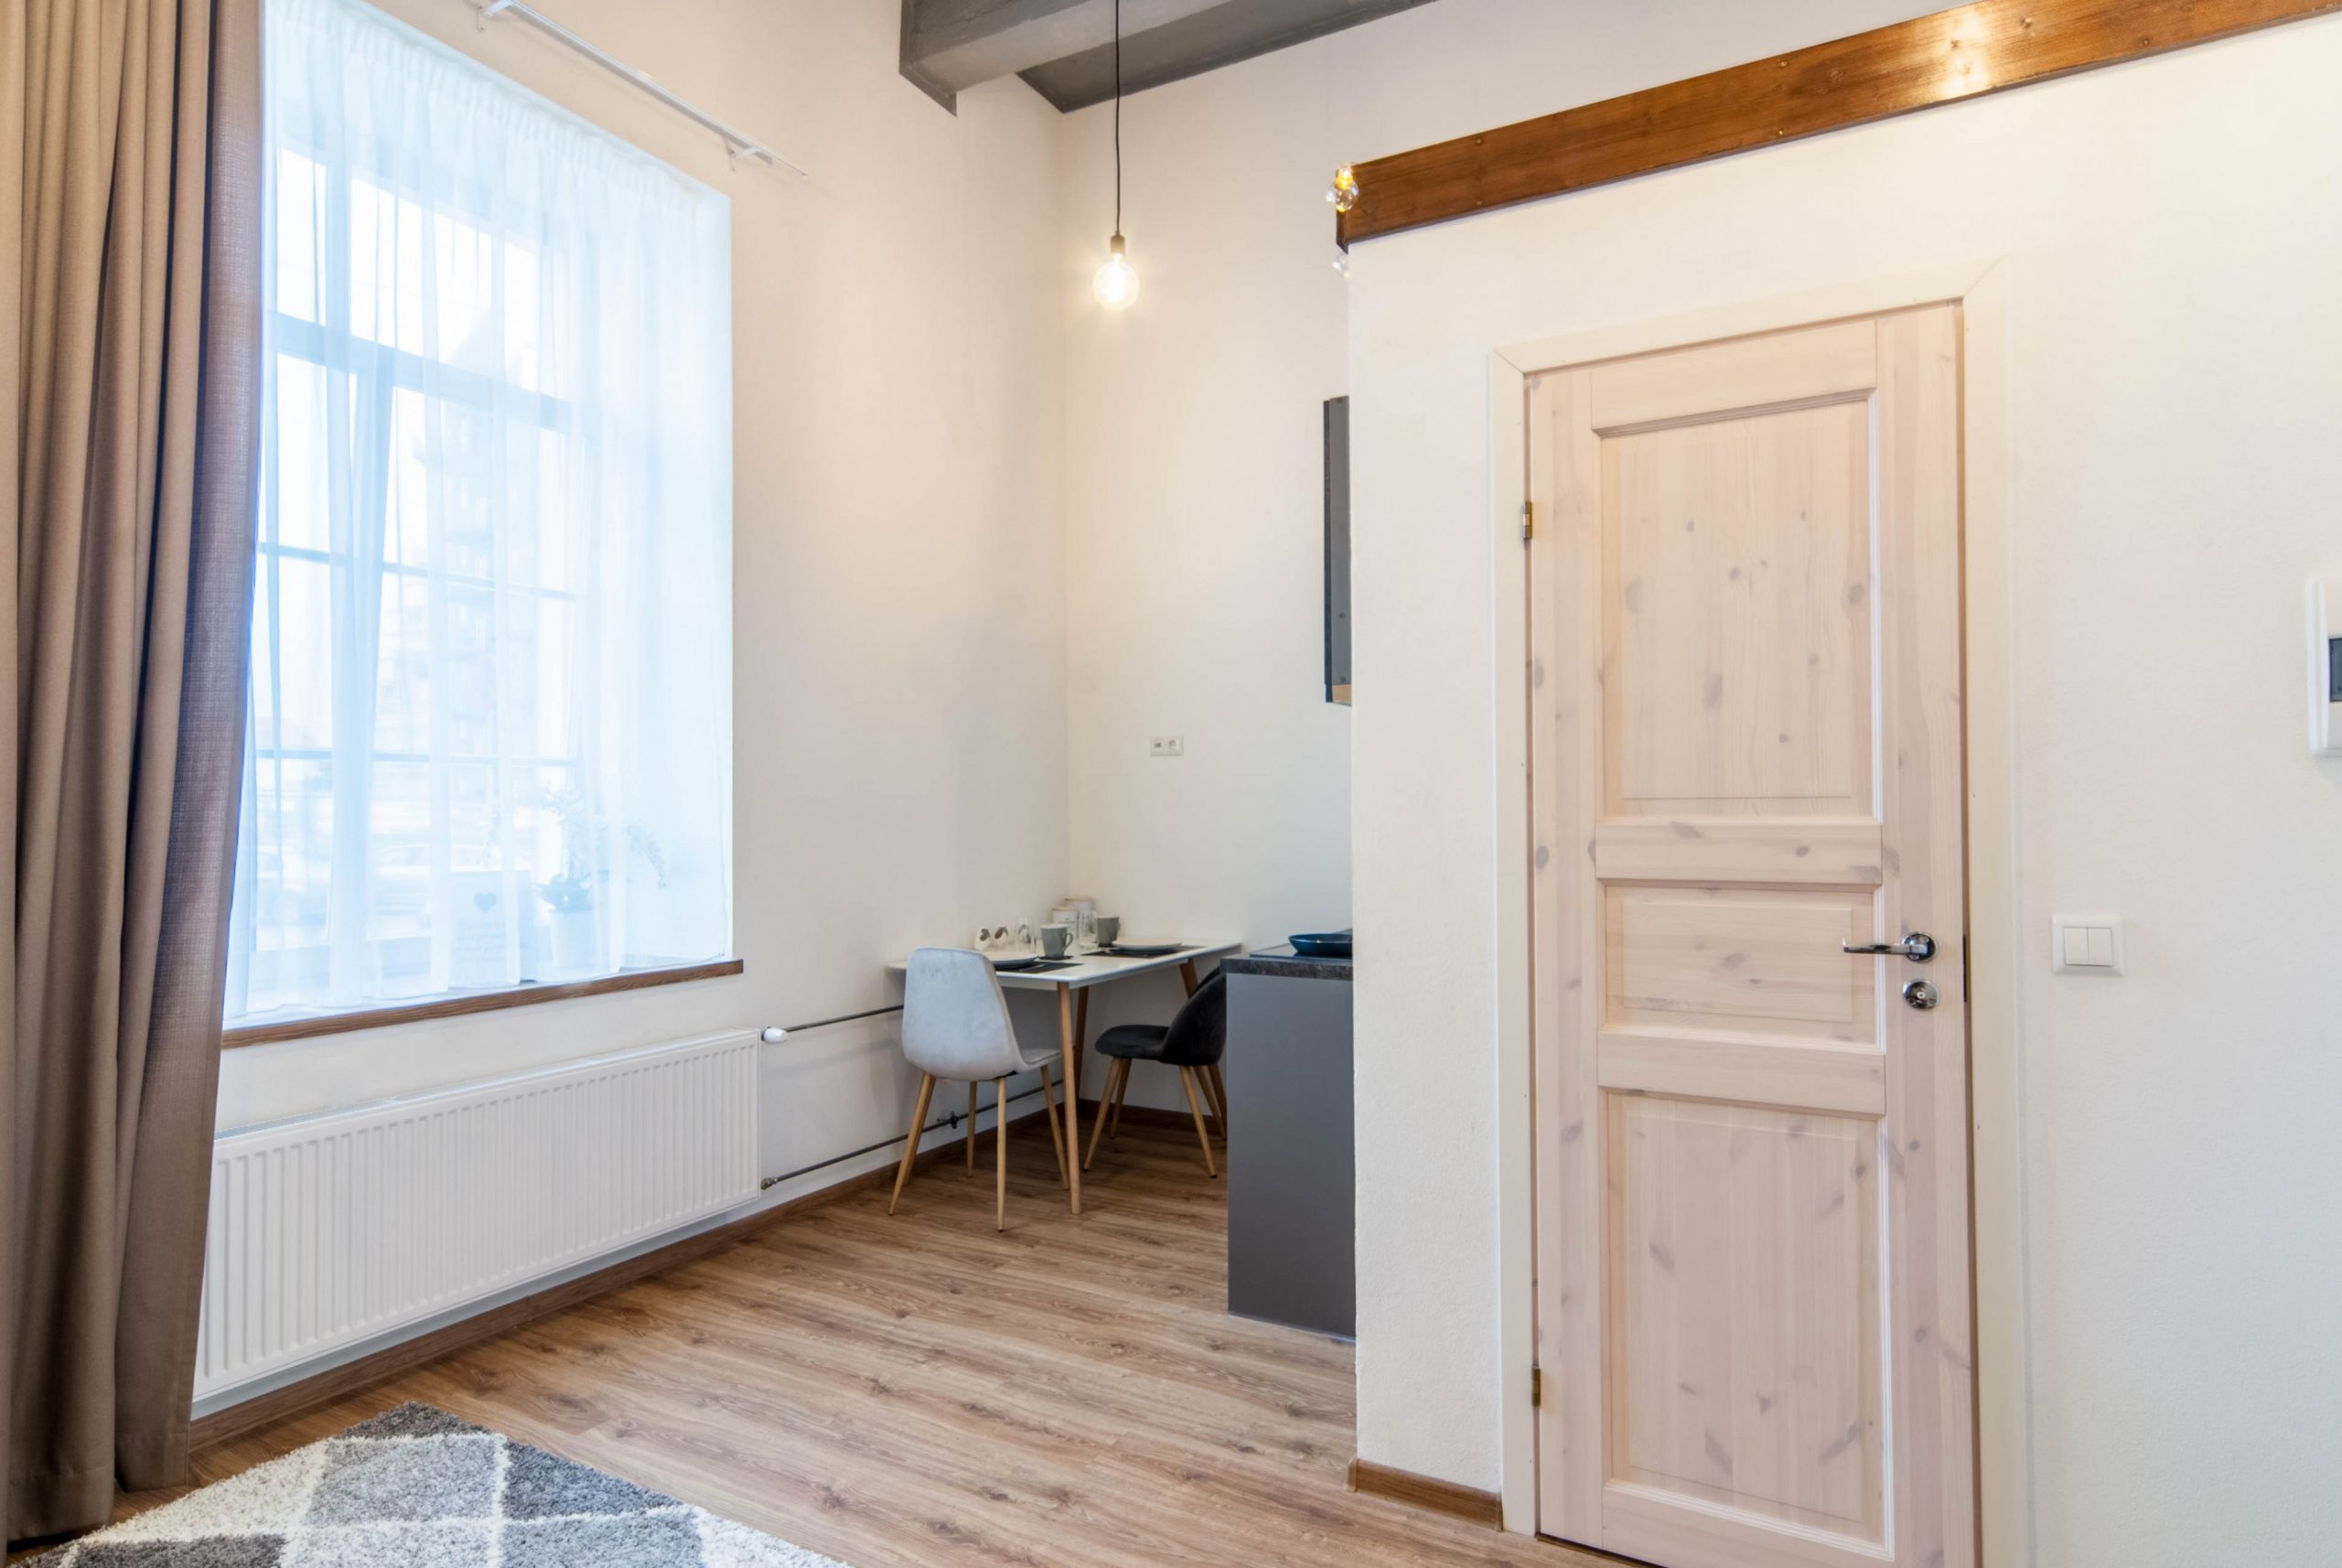 Cozy industrial design apartment near city center! - Apartments  - Design Apartment Near The City Center